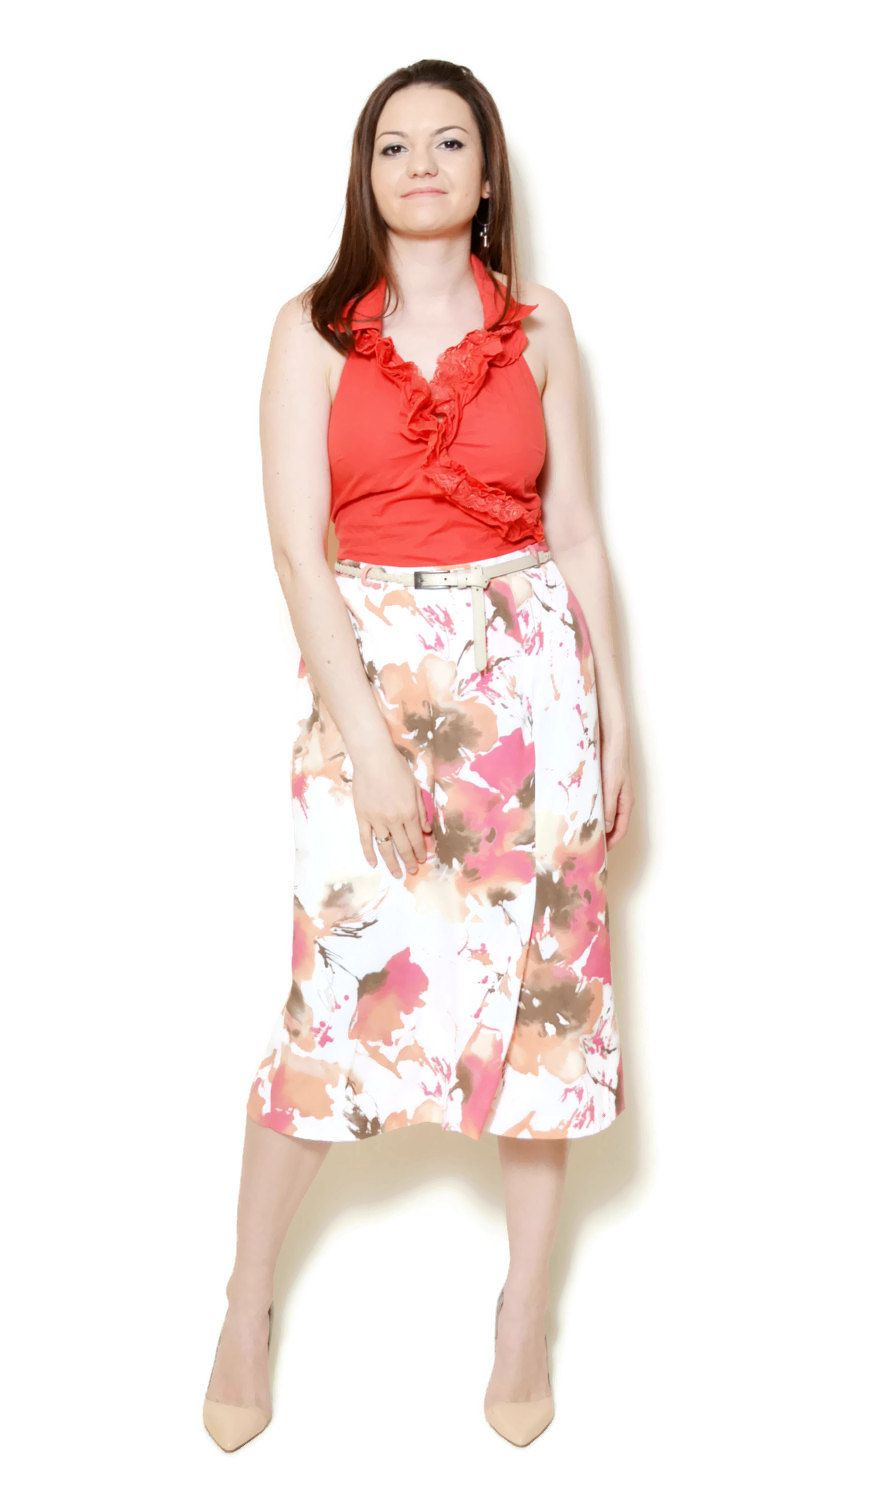 Vintage colorful floral midi skirt. The model on the pictures is size S/36 and 165 cm height. Please check measurements with your own to avoid problems with the size. Make sure you double the measurements where shown (*2):  Label size: L/40 Total lenght: 73 cm / 29 inches Waist: 40.5 cm *2 / 16 inches *2 Hips: 55 cm *2 / 21.5 inches *2 open Bottom Width: 61.5 cm *2 / 24 inches *2 Condition: very good Colors: White, Beige, Brown, Orange, Pink Circa: 90s Fabric: 10...